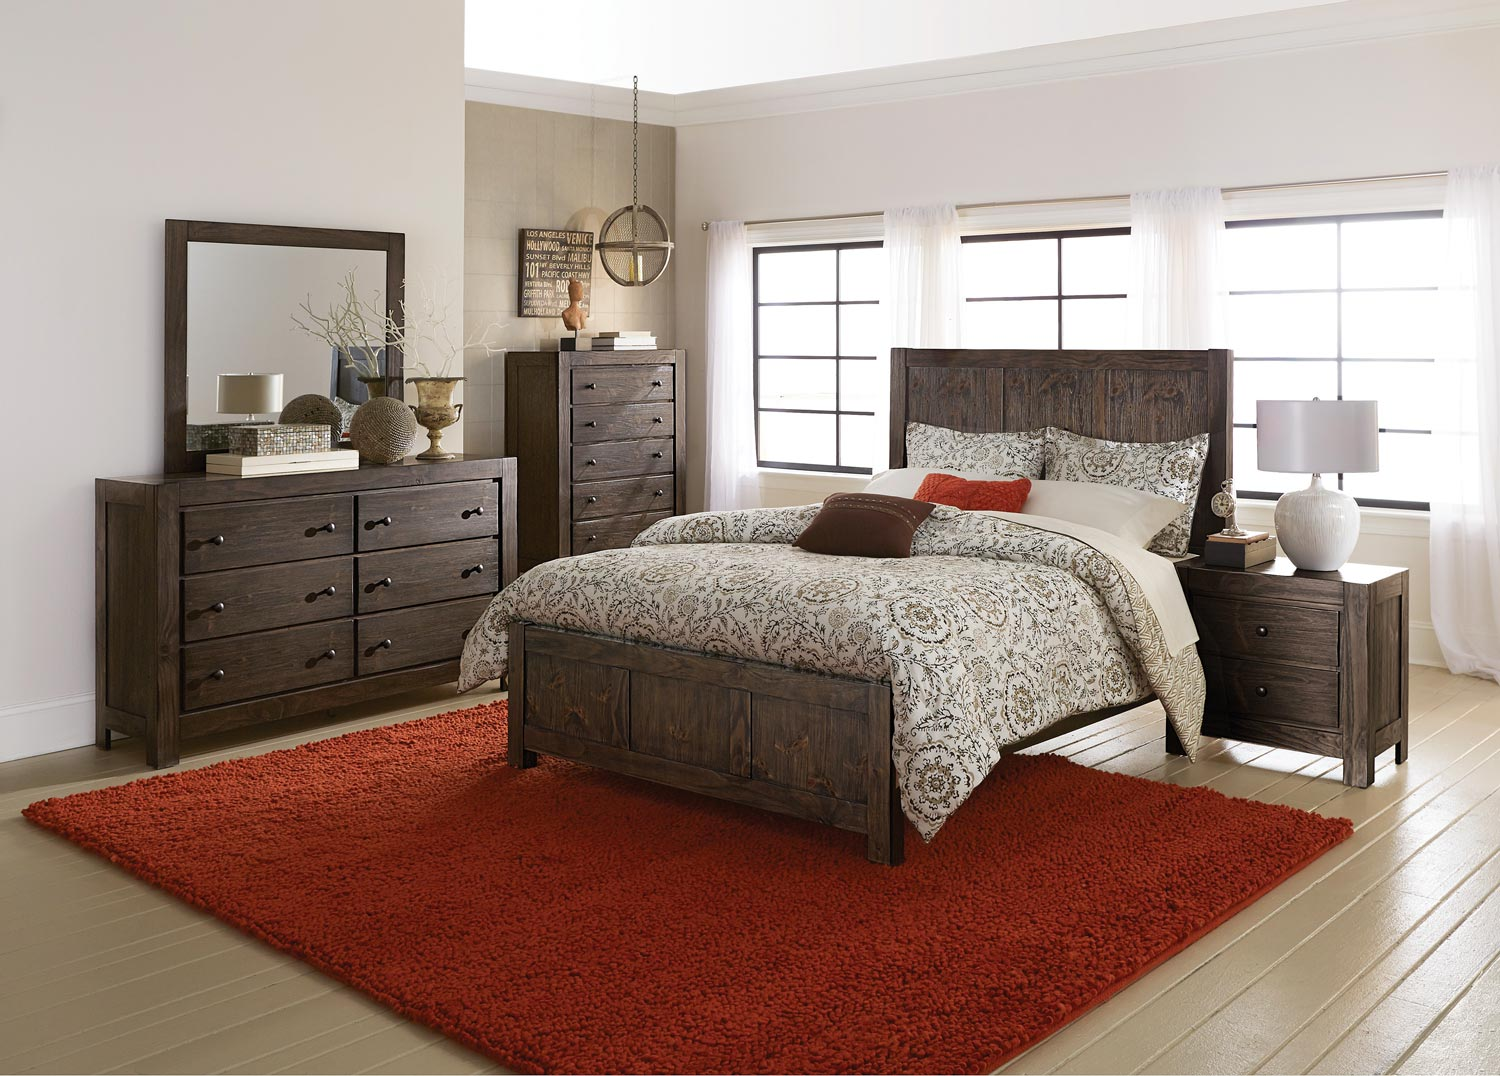 Homelegance Farrin Panel Bedroom Set - Dark Rustic Pine